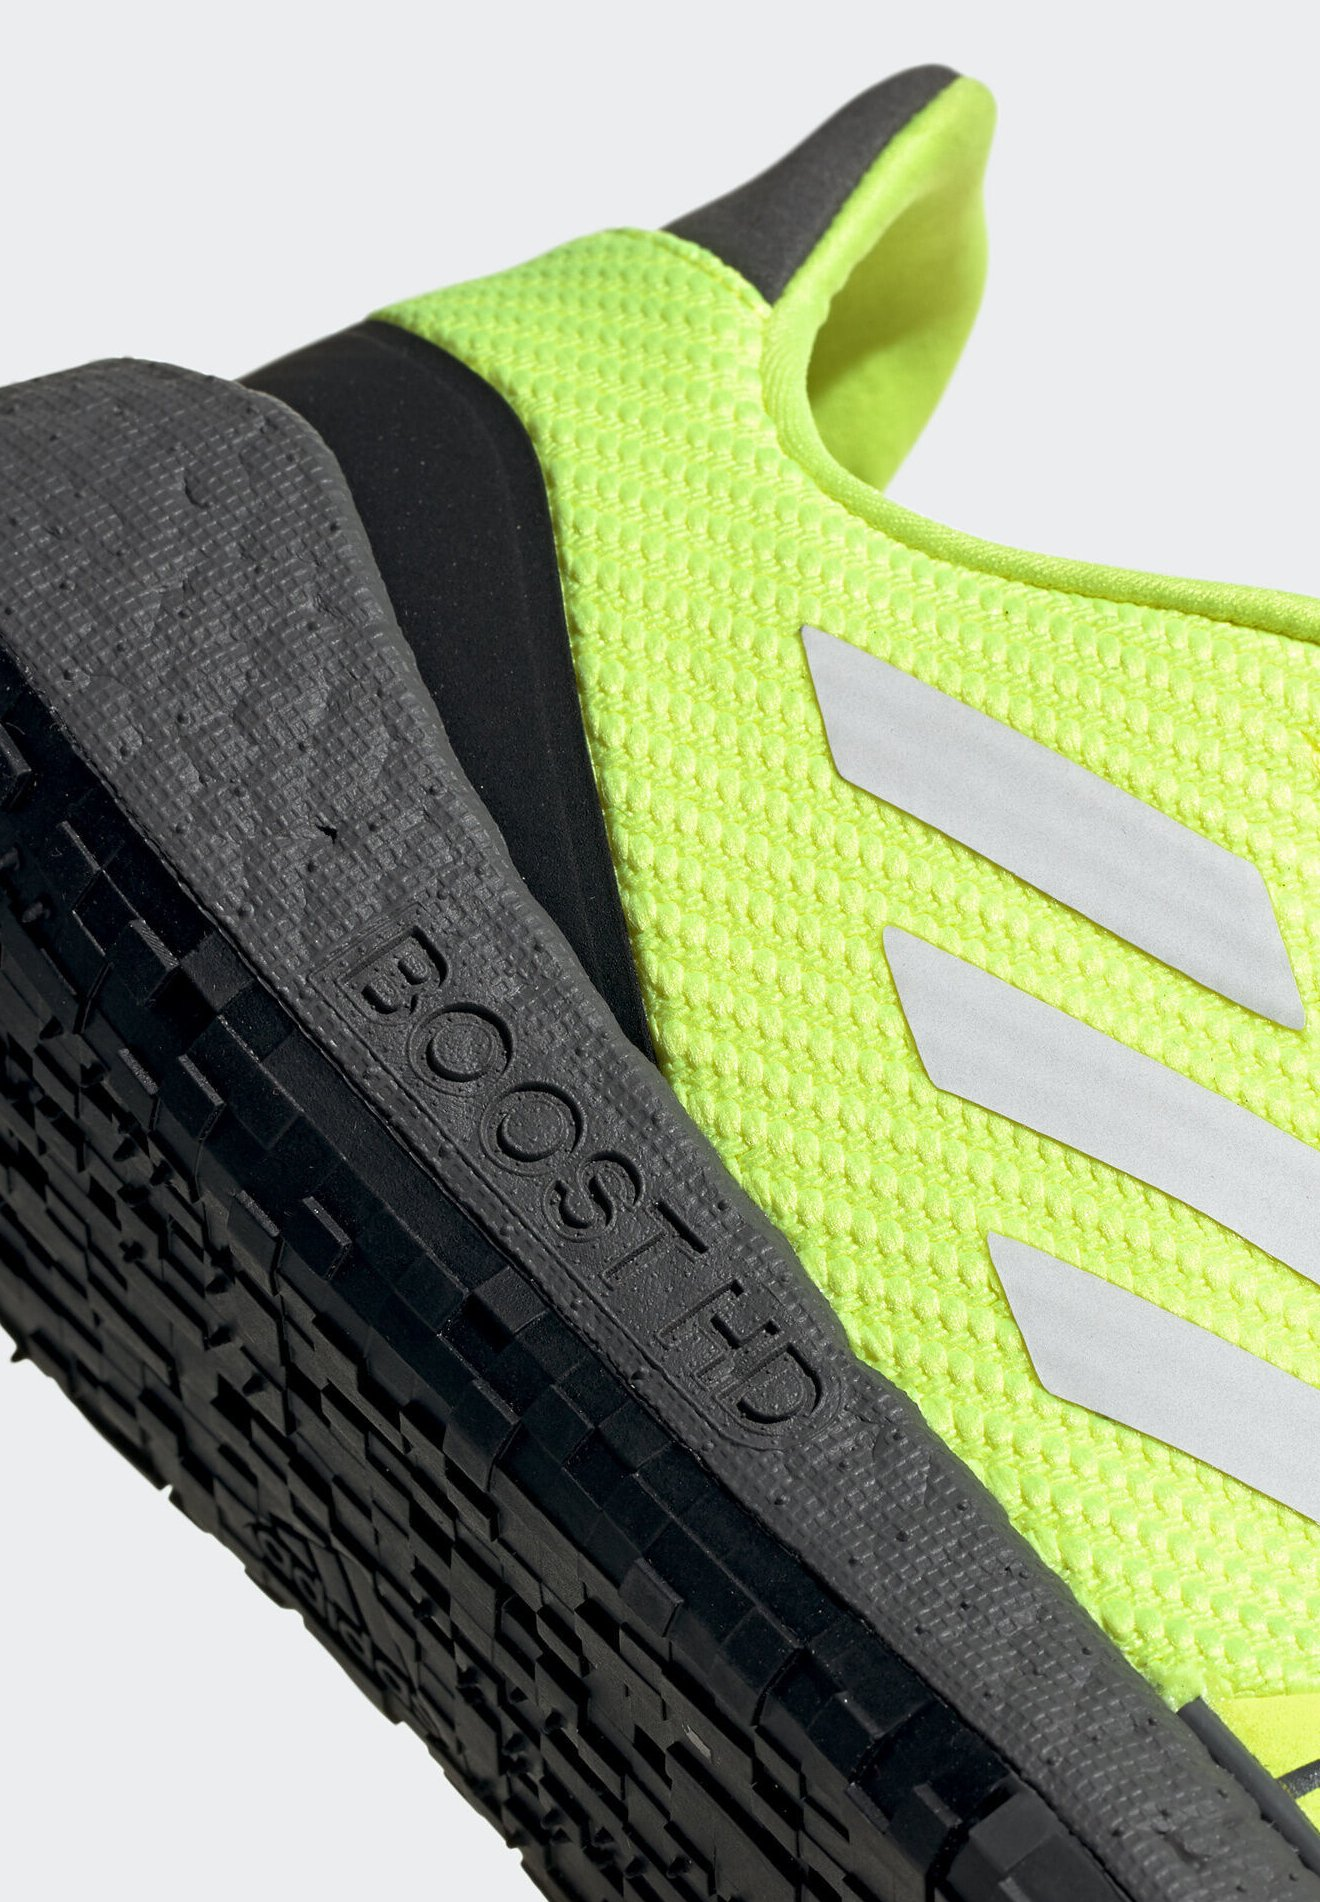 Adidas Performance Pulseboost Hd Winter Shoes - Sneakers Laag Yellow